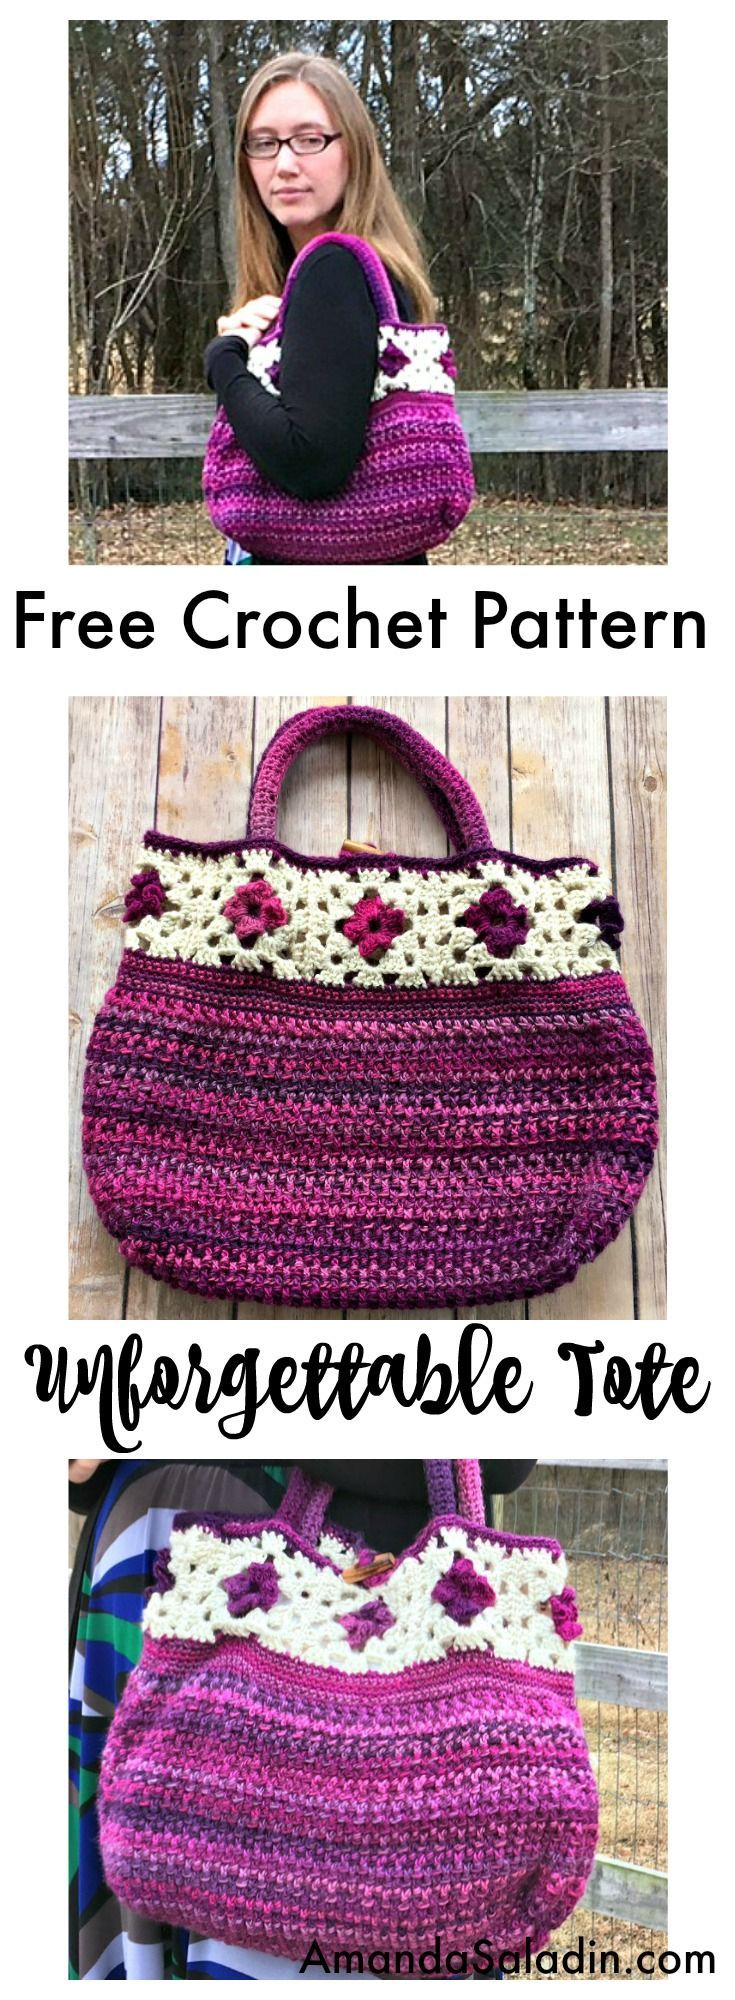 The Unforgettable Tote combines granny squares with post crochet stitches to create a unique and classic design. Get the free pattern here!